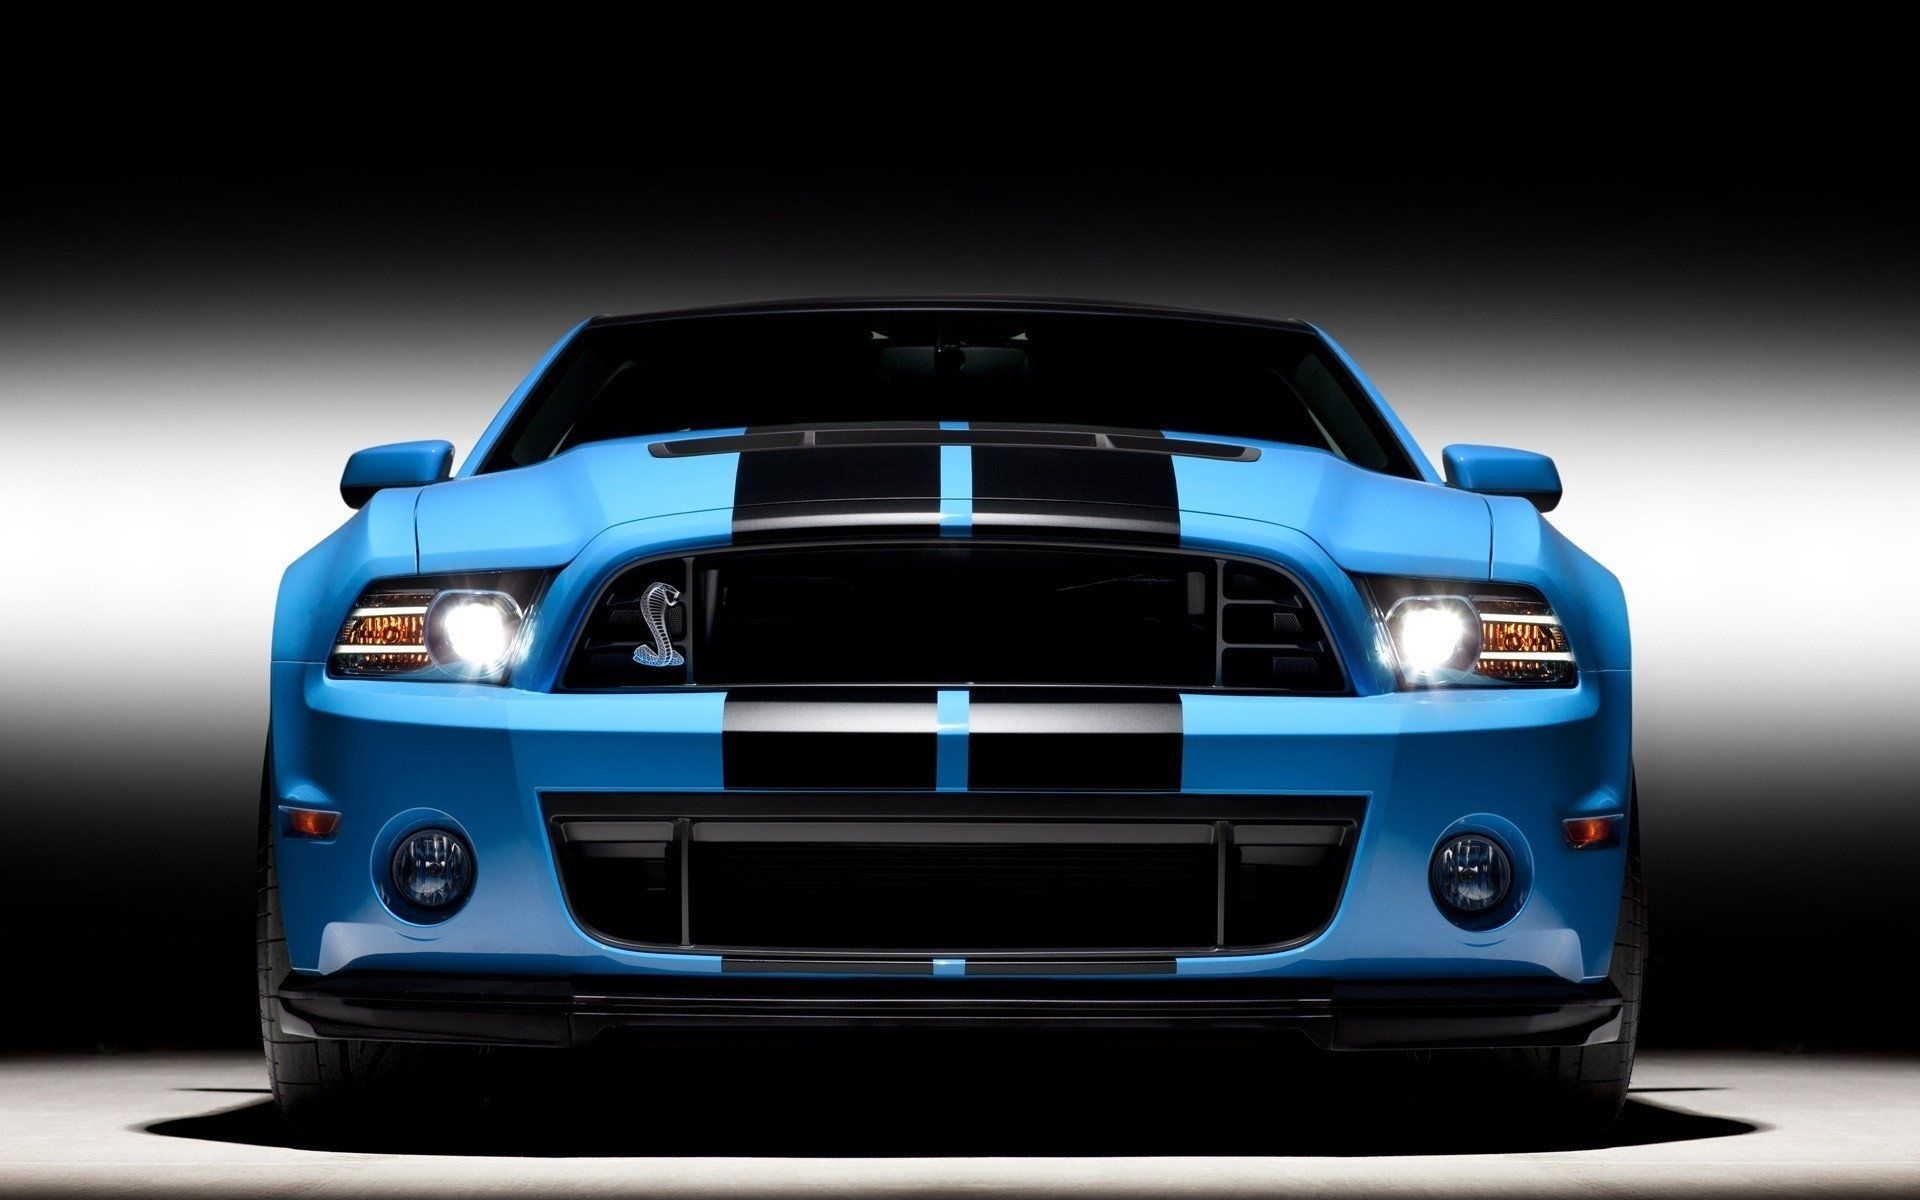 Ford Mustang Shelby Gt Hd Wallpapers Backgrounds Ford Mustang